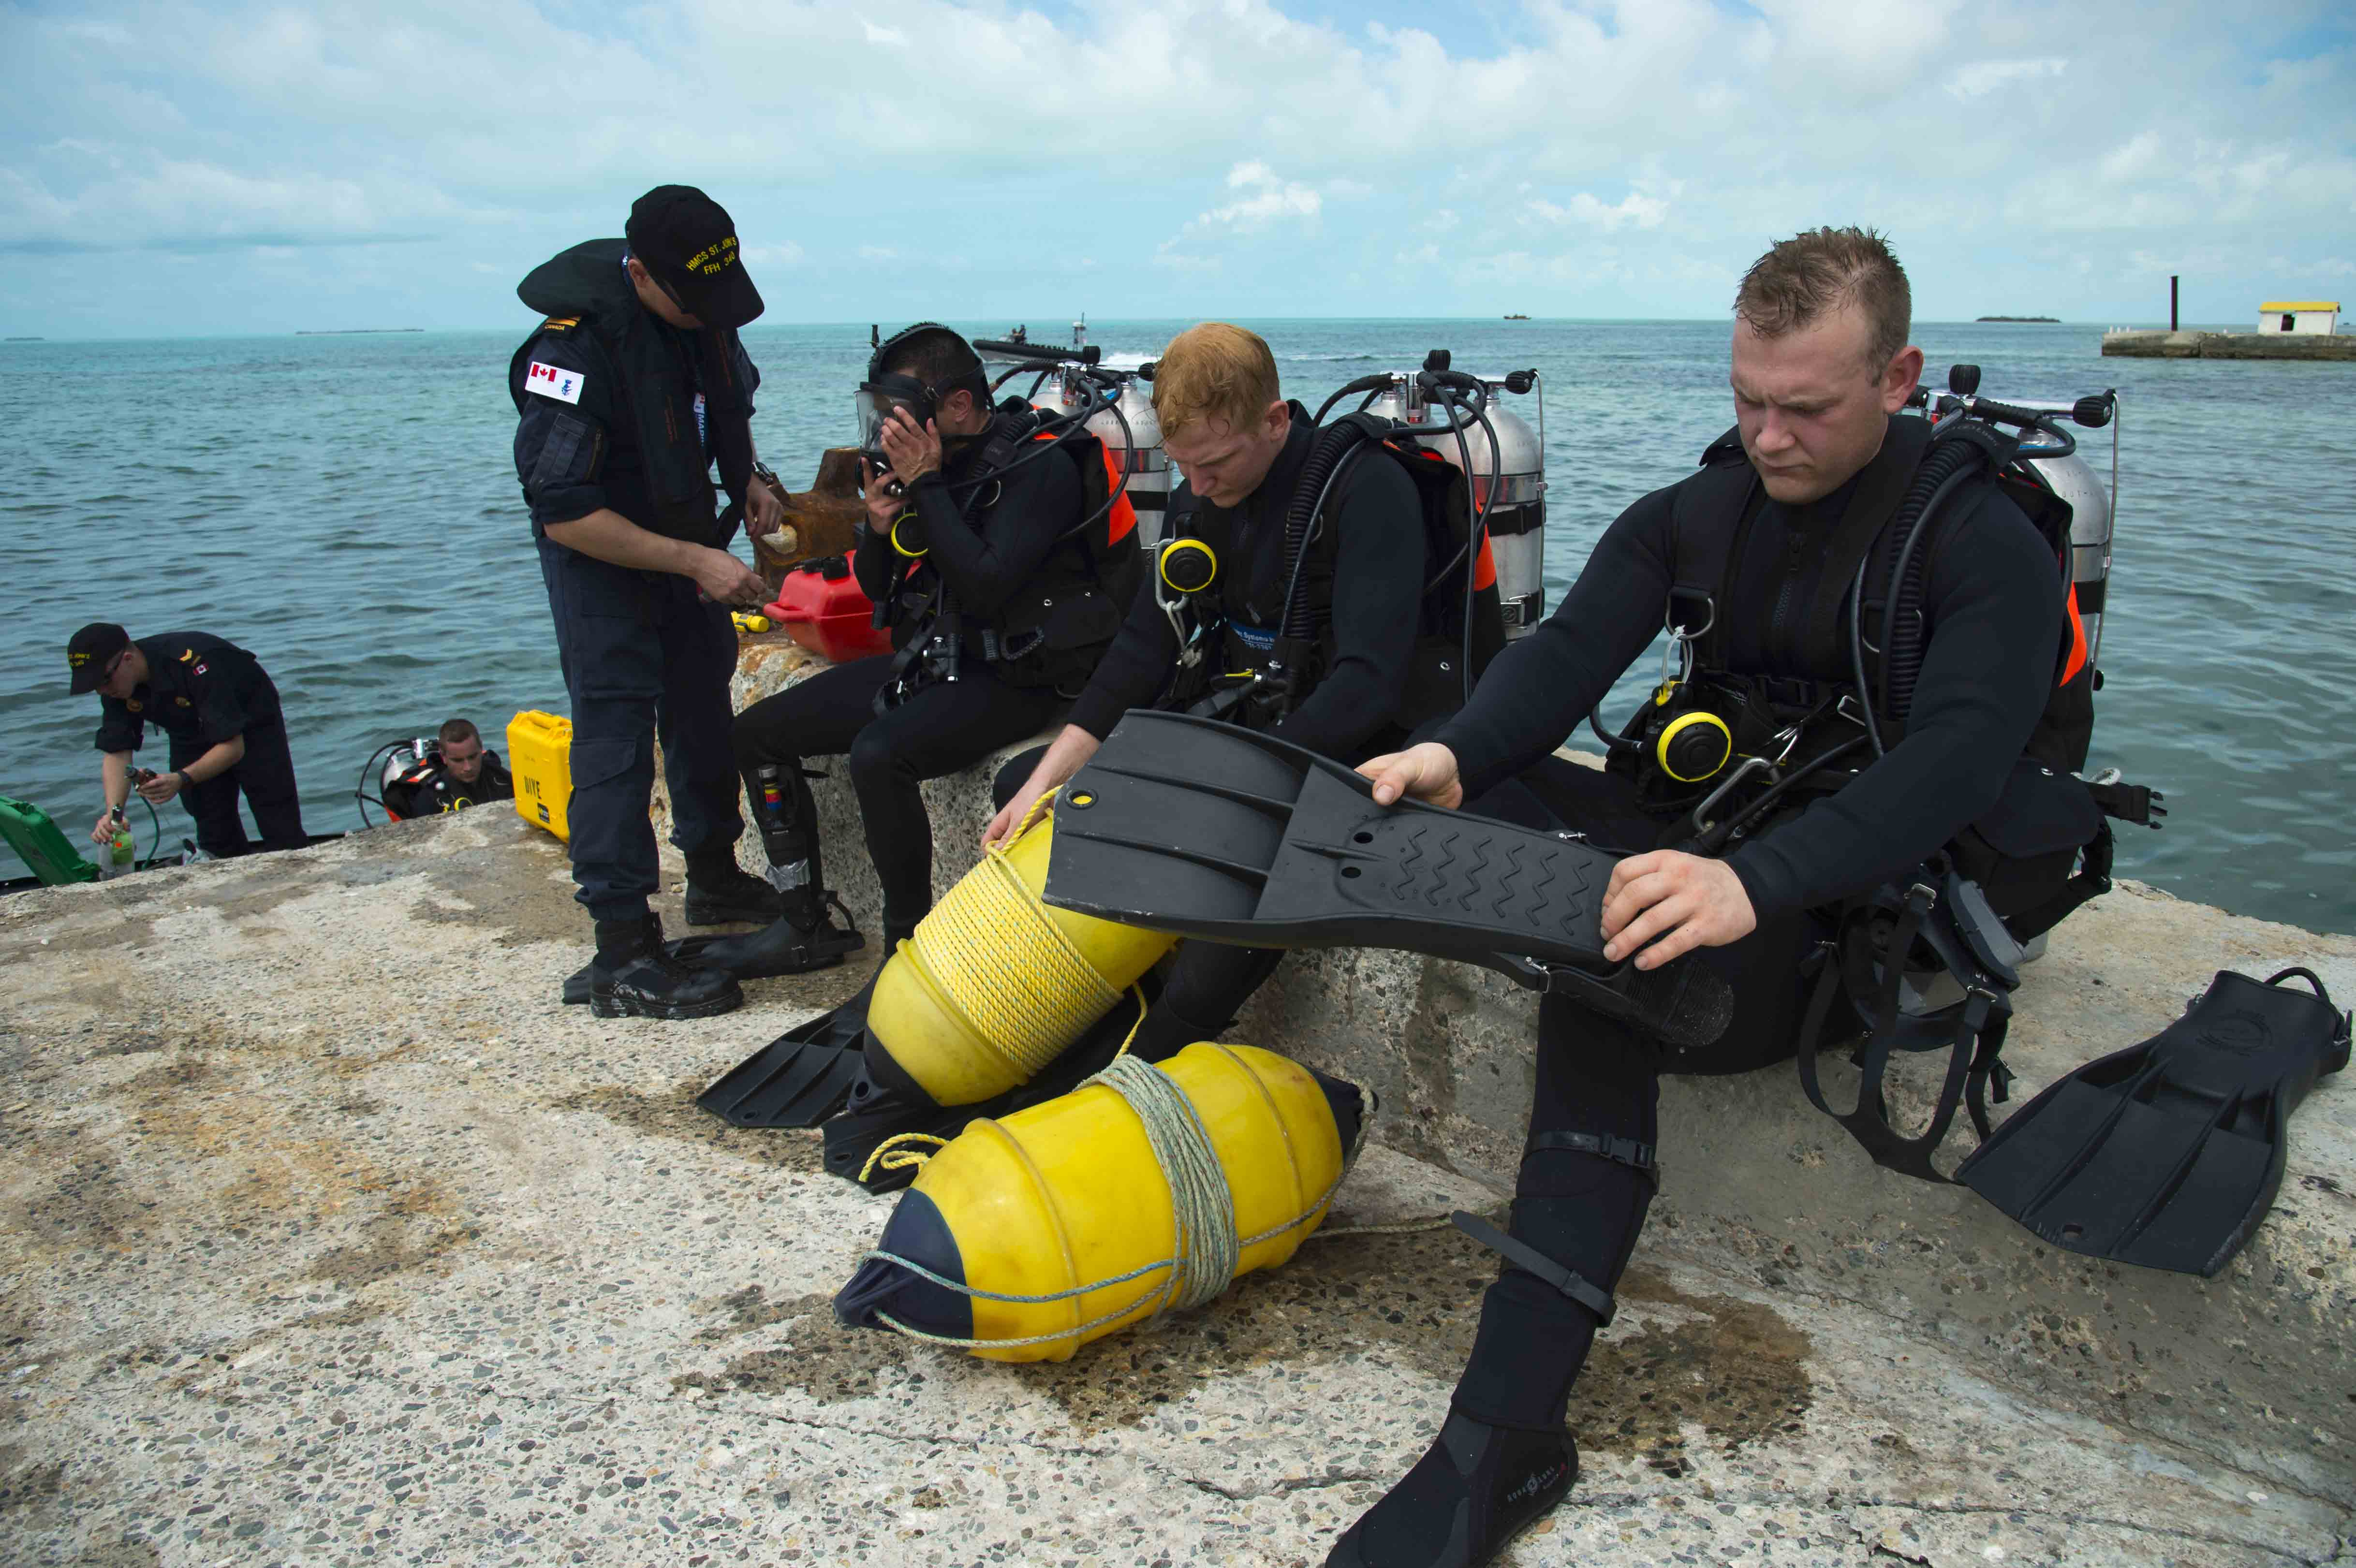 Divers from Her Majesty's Canadian Ship St. John's prepare to inspect a jetty on South Caicos Island during Operation RENAISSANCE, the Hurricane Irma humanitarian aid mission in the Caribbean, on September 17, 2017. Photo: MCpl Chris Ringius, Formation Imaging Services Halifax